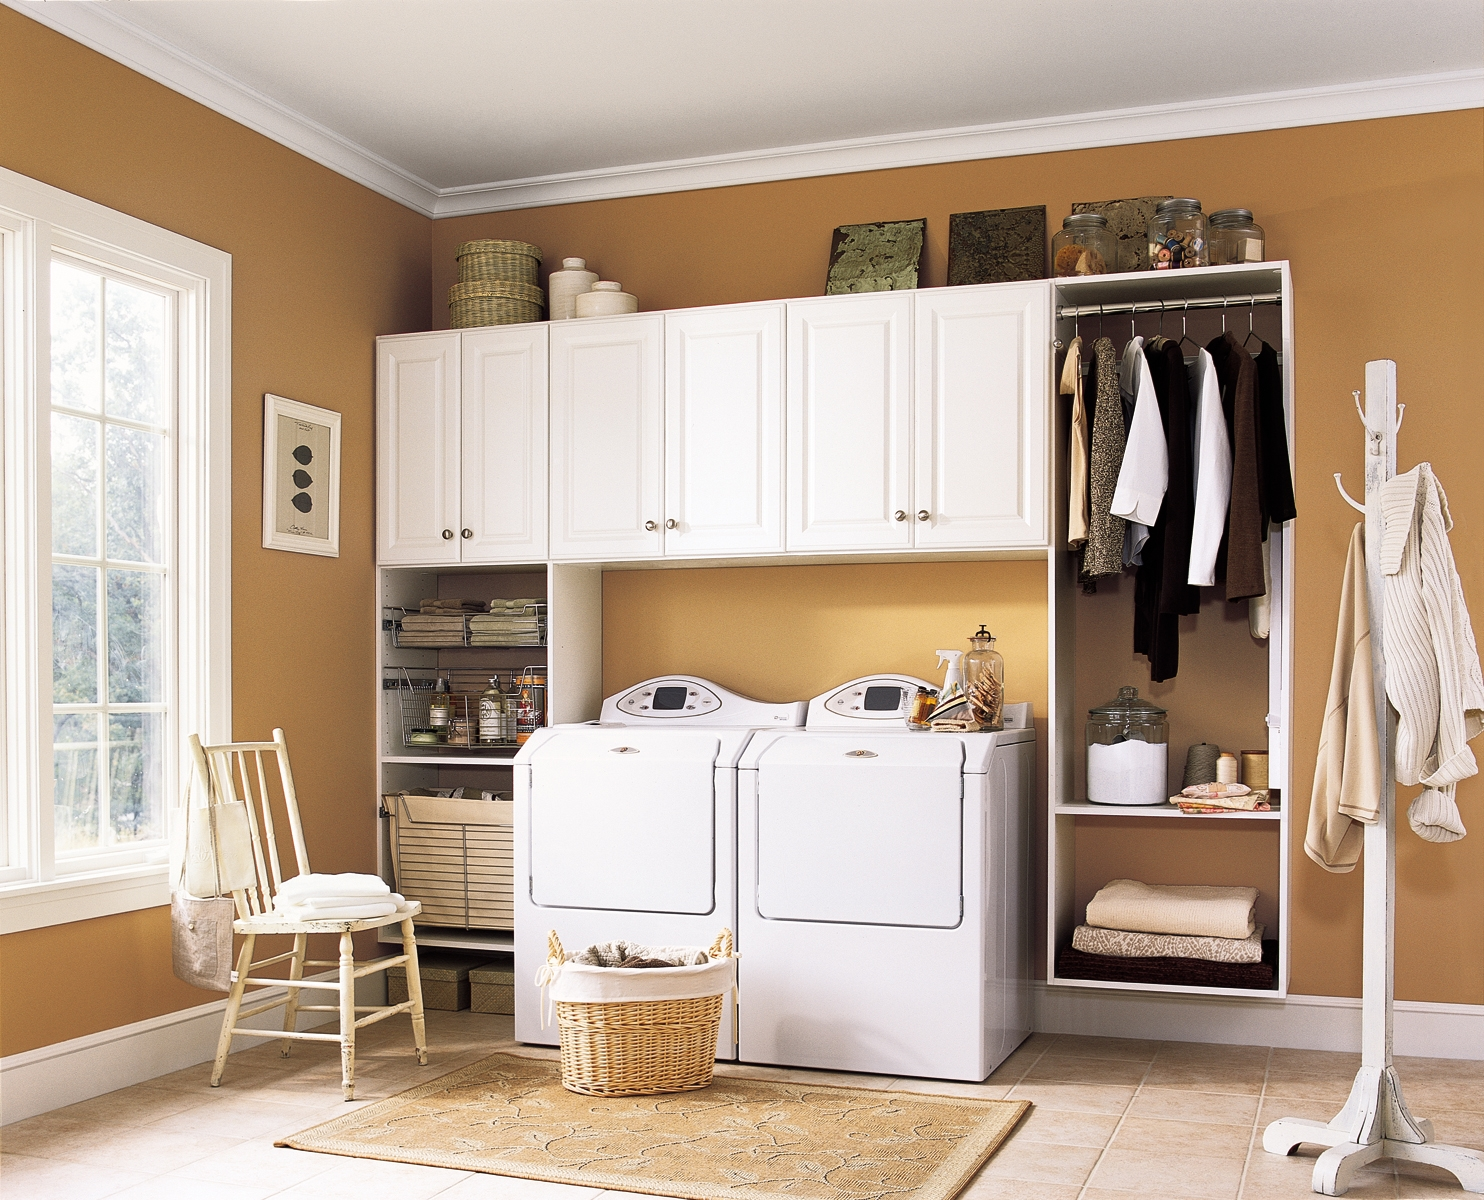 Amazing Laundry Room Storage 1484 x 1200 · 1398 kB · jpeg